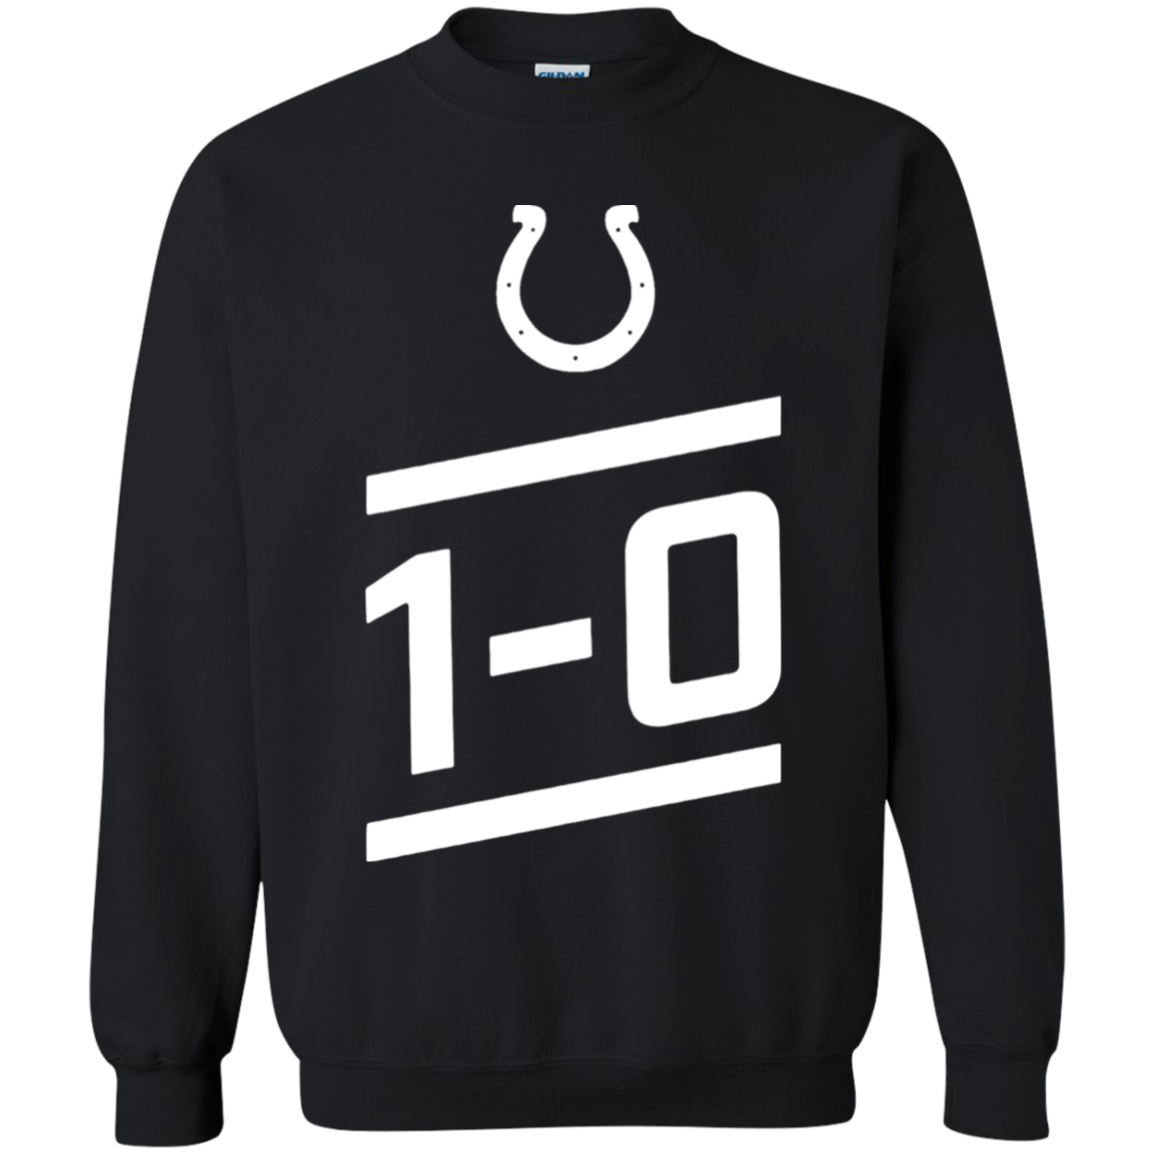 Colts 1-0 Sweater